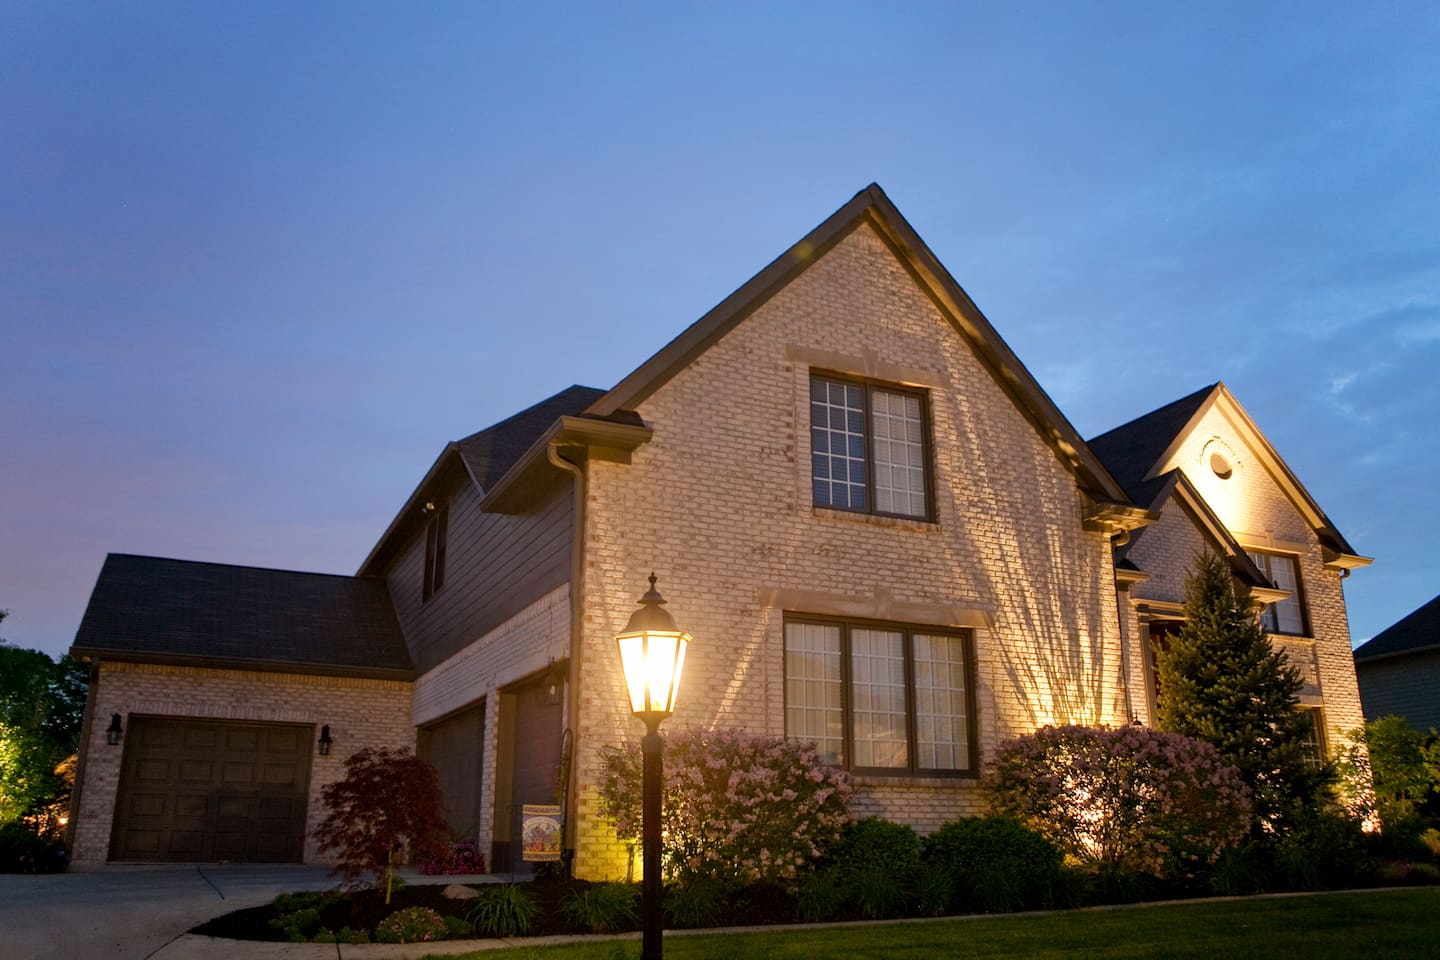 Indianapolis Outdoor Lighting Companies Illuminate Homes And Yards